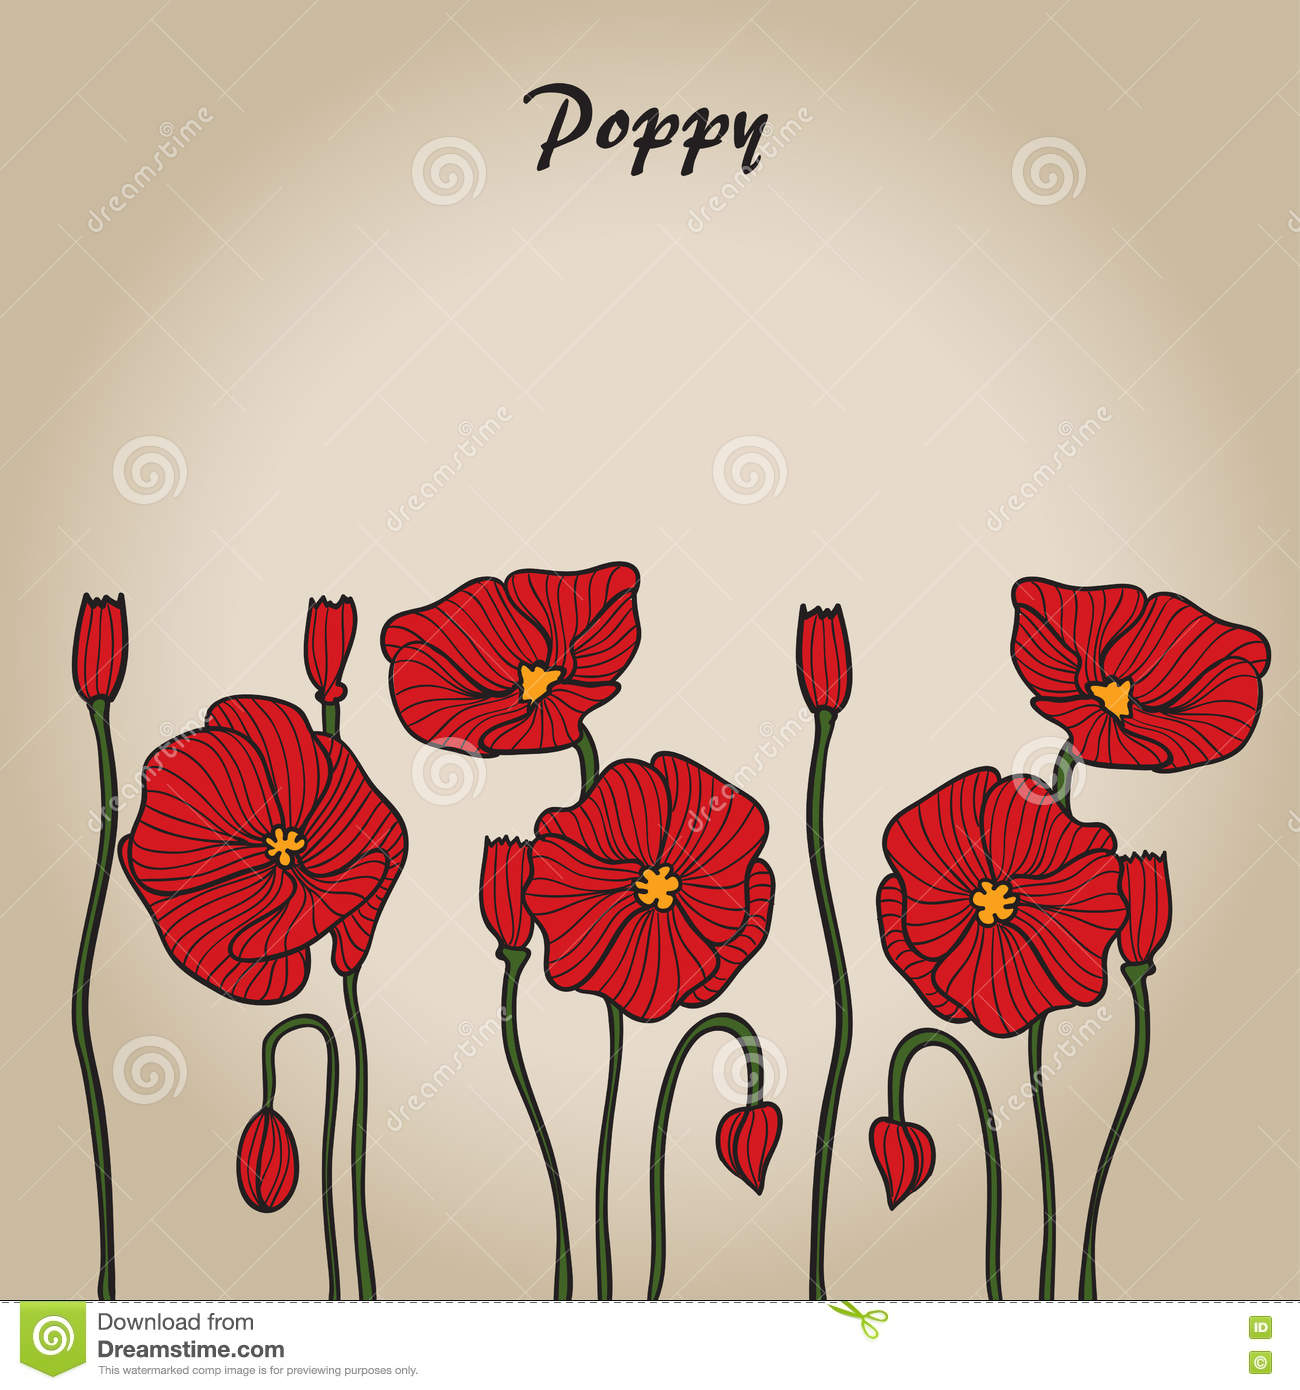 Red poppy sketch stock vector image 72829468 - Dreaming about the color red ...